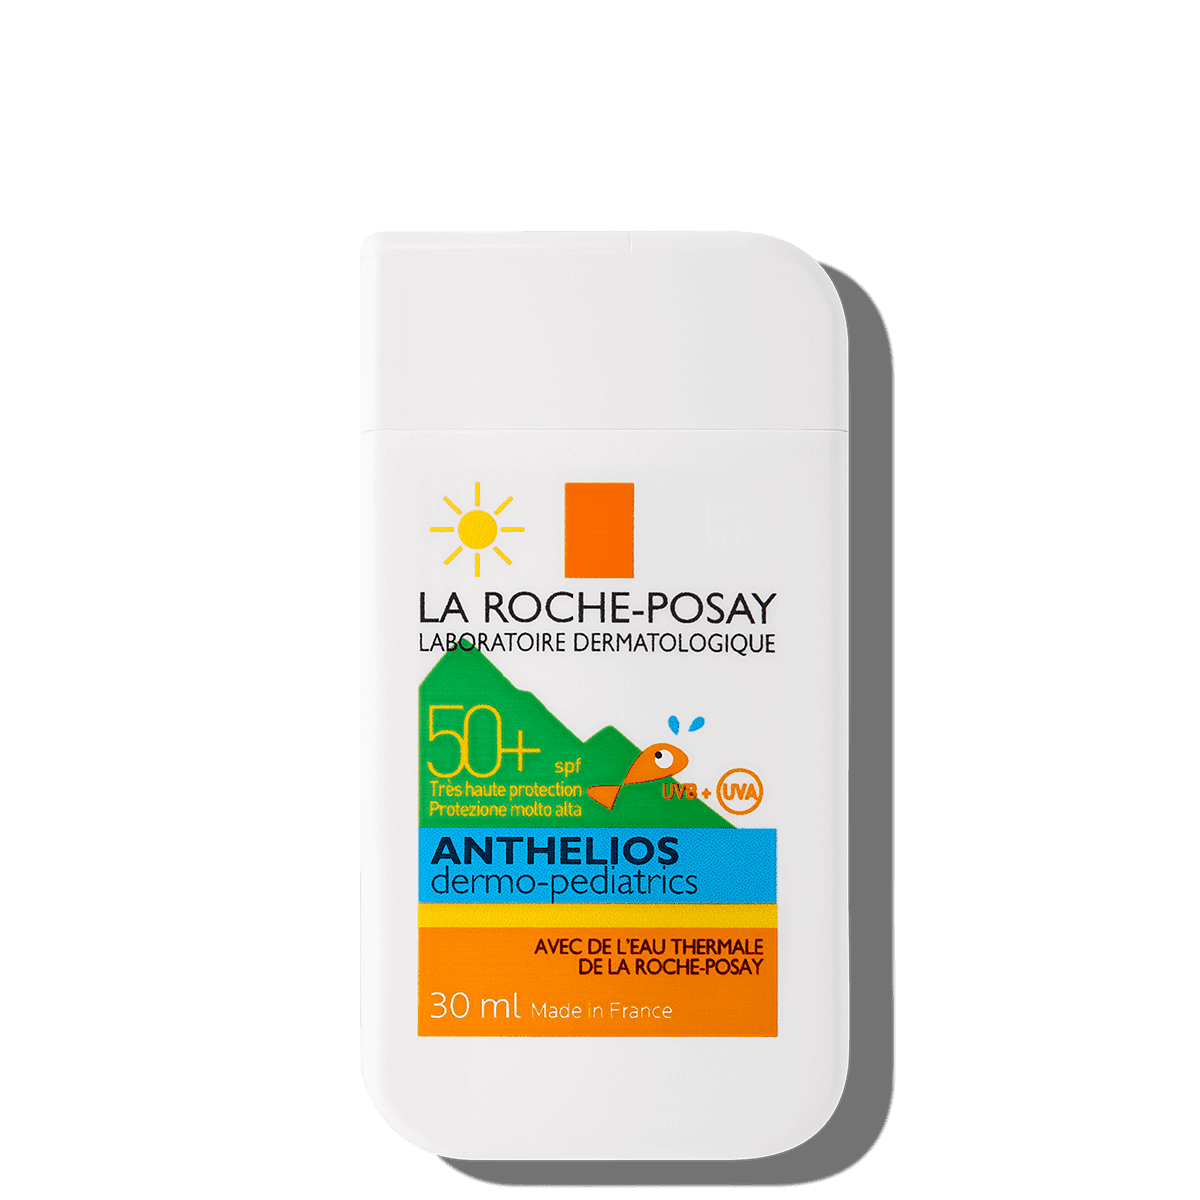 La Roche Posay ProductPage Sun Anthelios Pocket Dermo Pediatrics Lotio